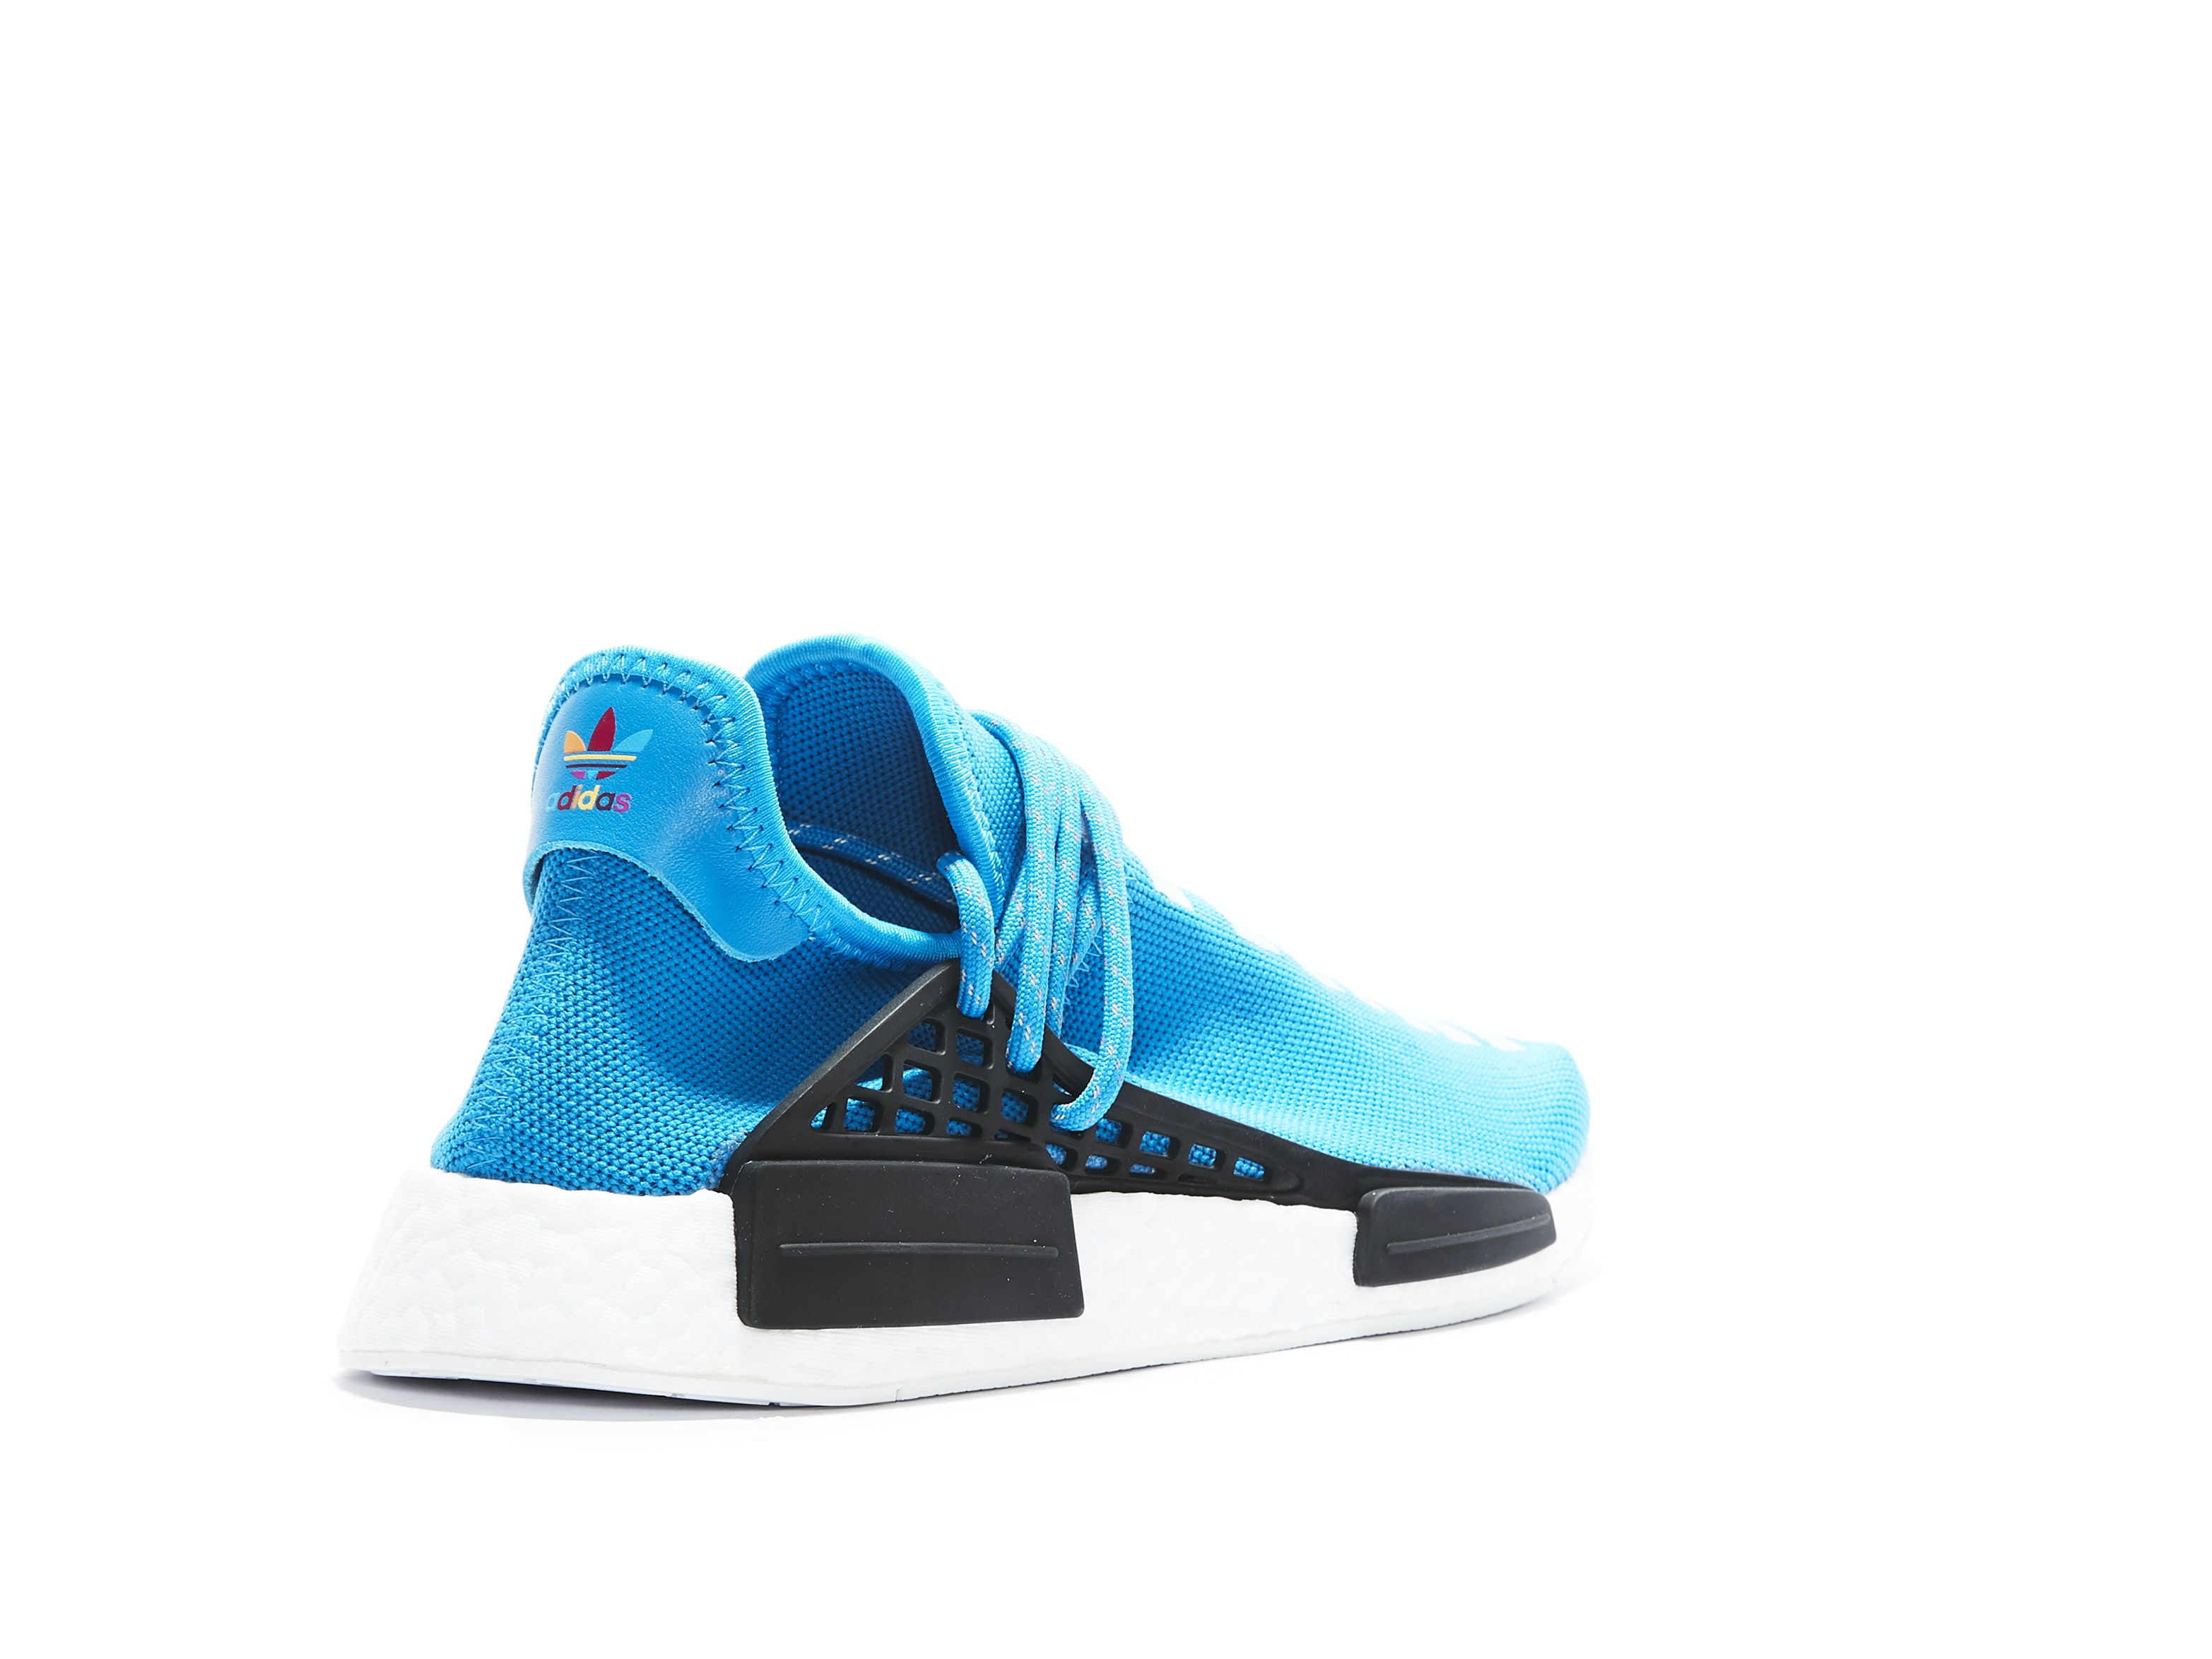 7d2498eb52dbf NMD Human Race x Pharrell Blue. 100% AuthenticAvg Delivery Time  1-2 days.  Adidas   BB0618